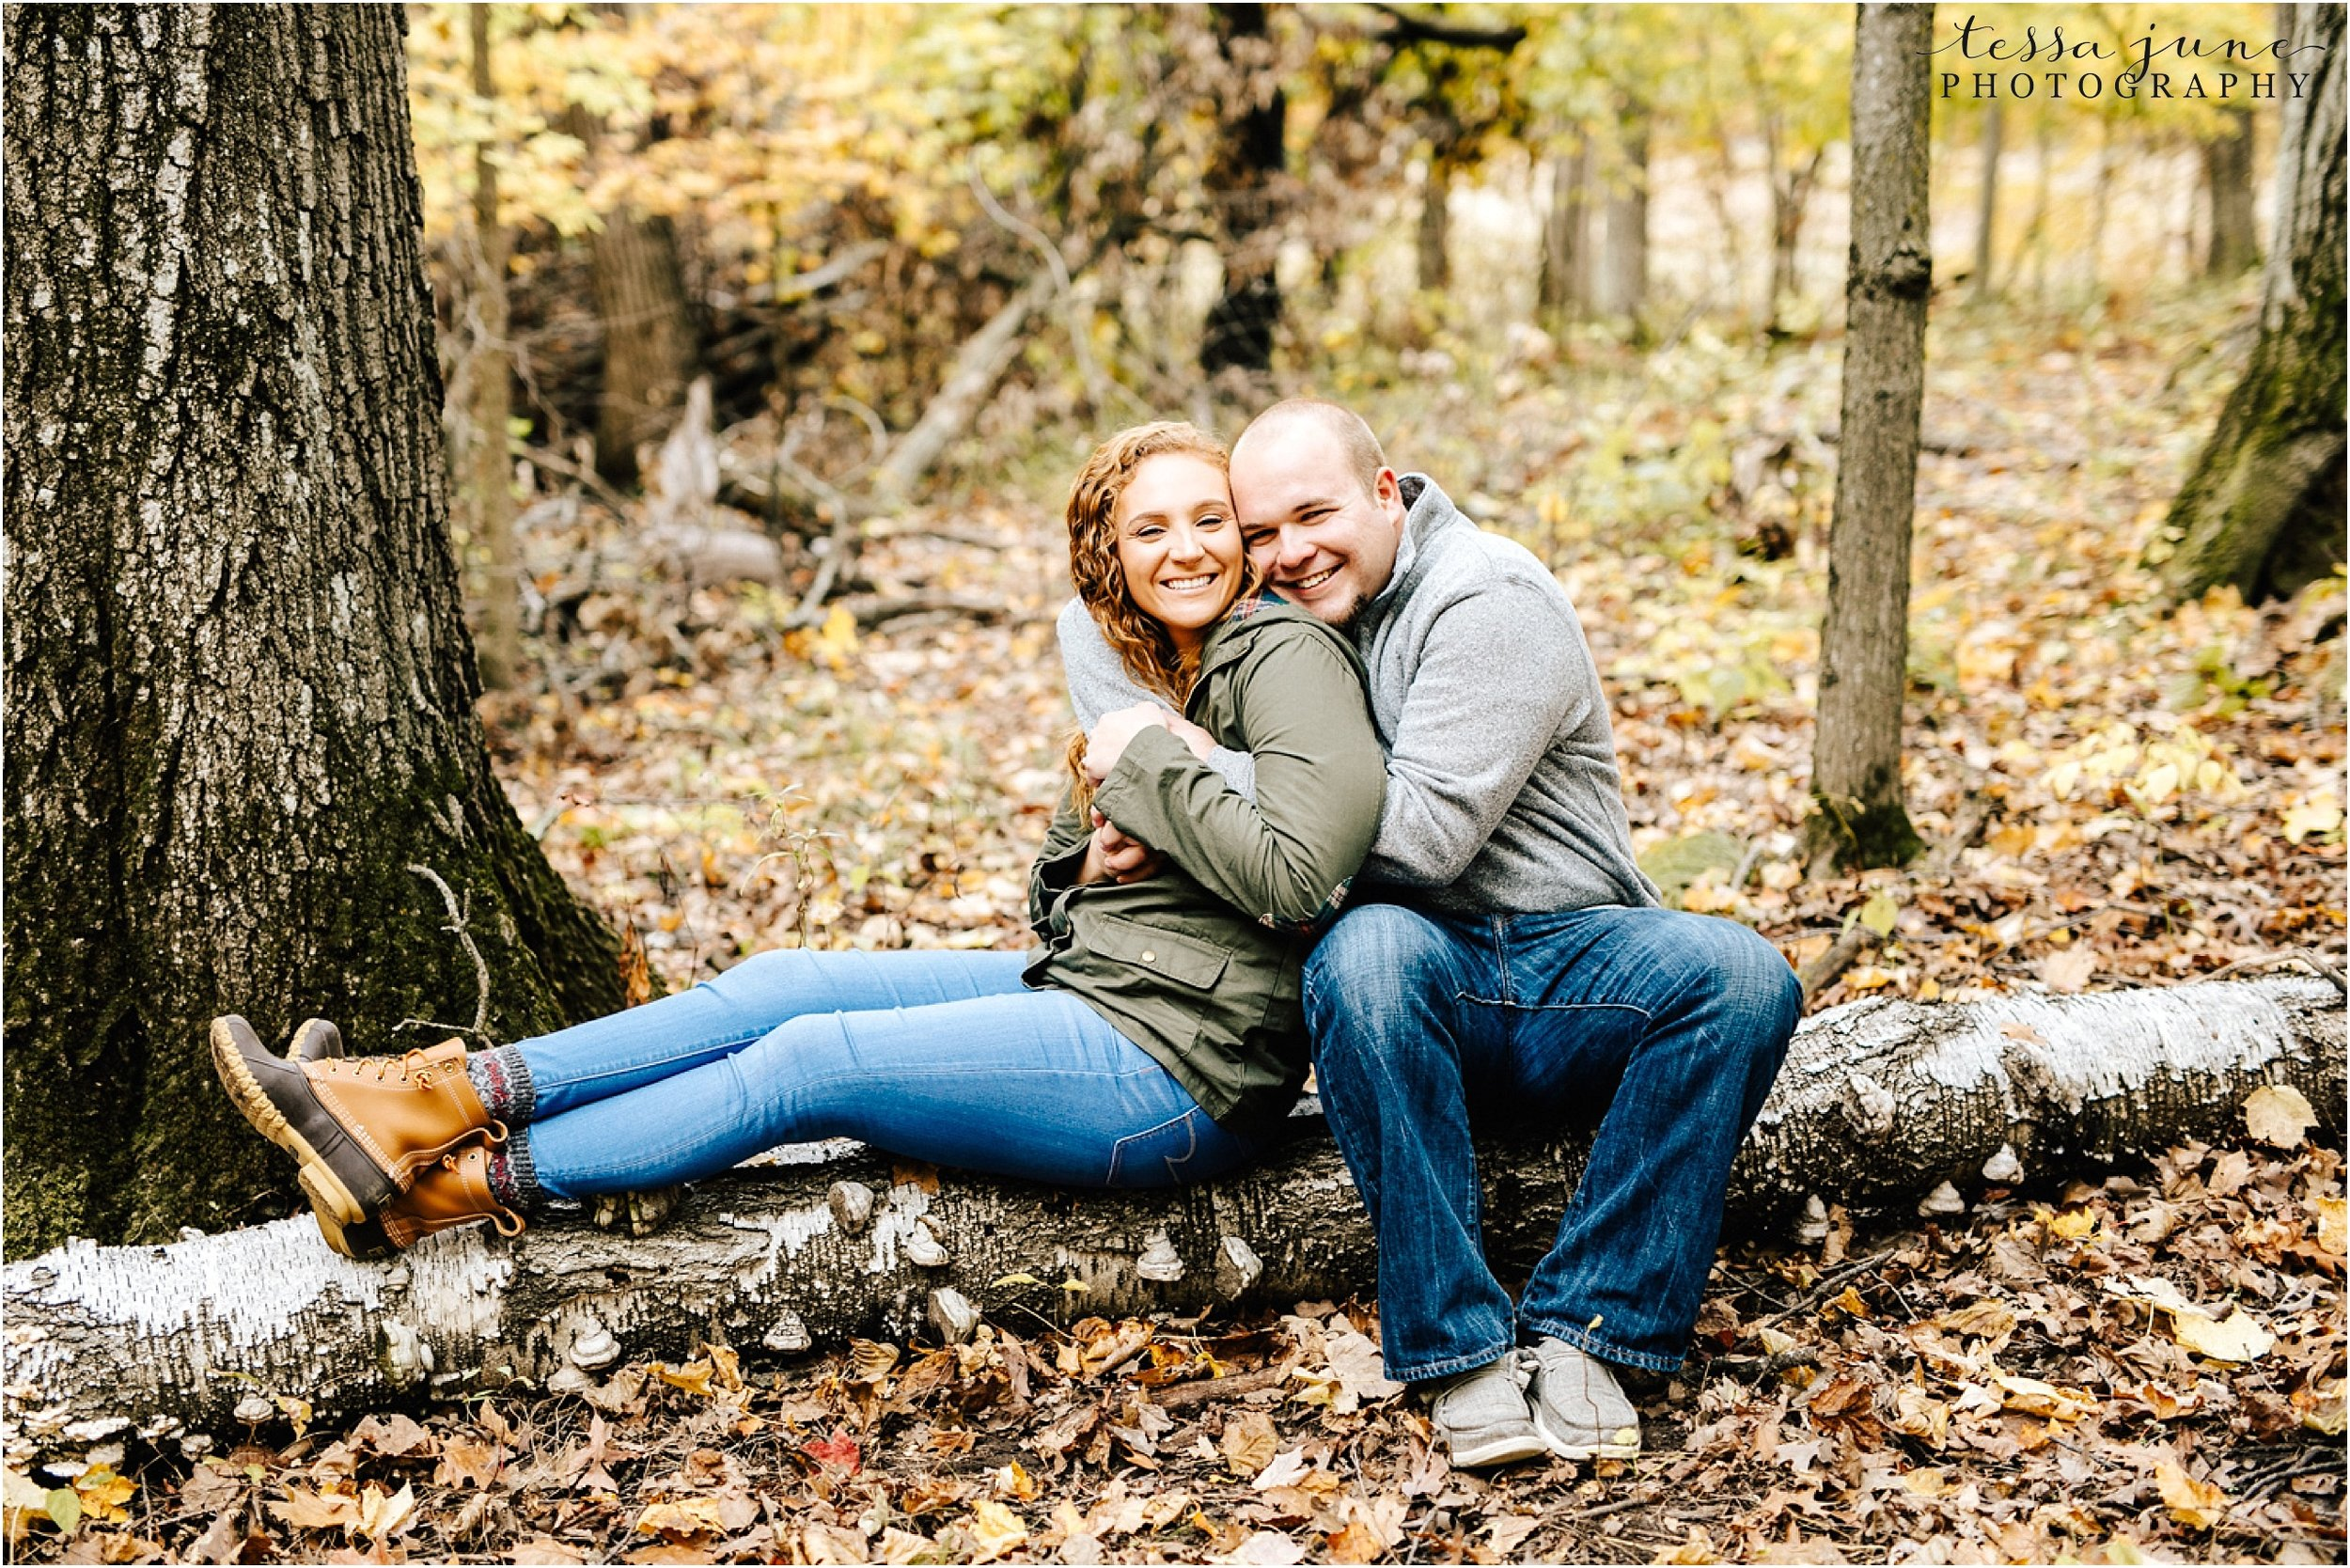 st-cloud-wedding-photographer-lake-maria-engagement-in-the-fall-9.jpg